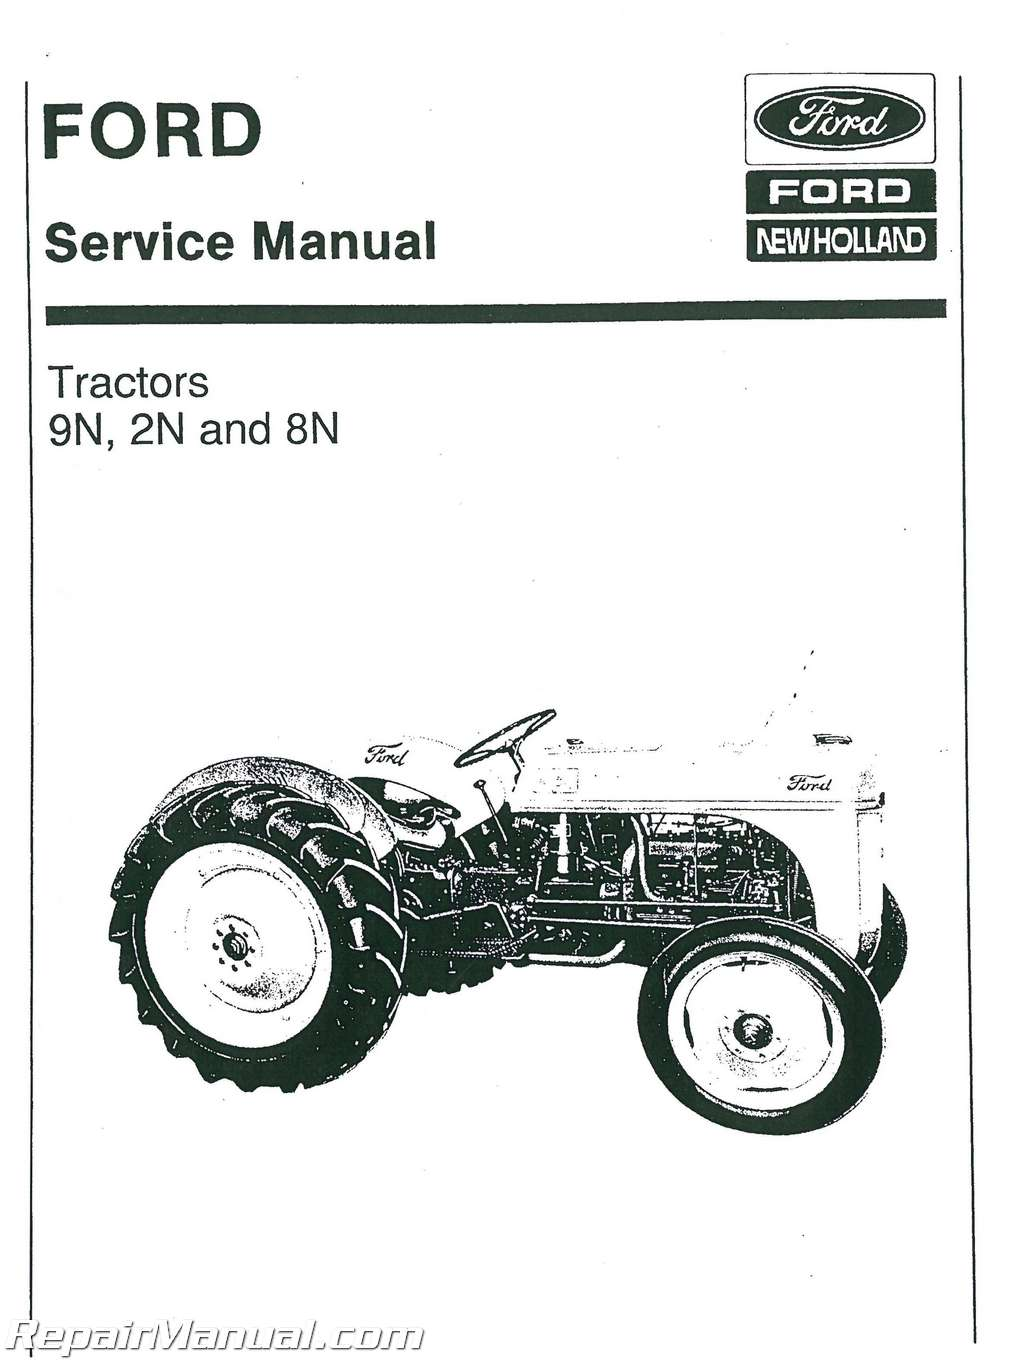 V8 Engine Schematic together with Chevy Silverado 1500 V8 Engine Diagram furthermore Farmall 12 Volt Wiring Diagram furthermore tbtrans   1cdfd1c0 likewise 900 Ford Tractor Wiring Harness. on 1941 ford tractor wiring diagram